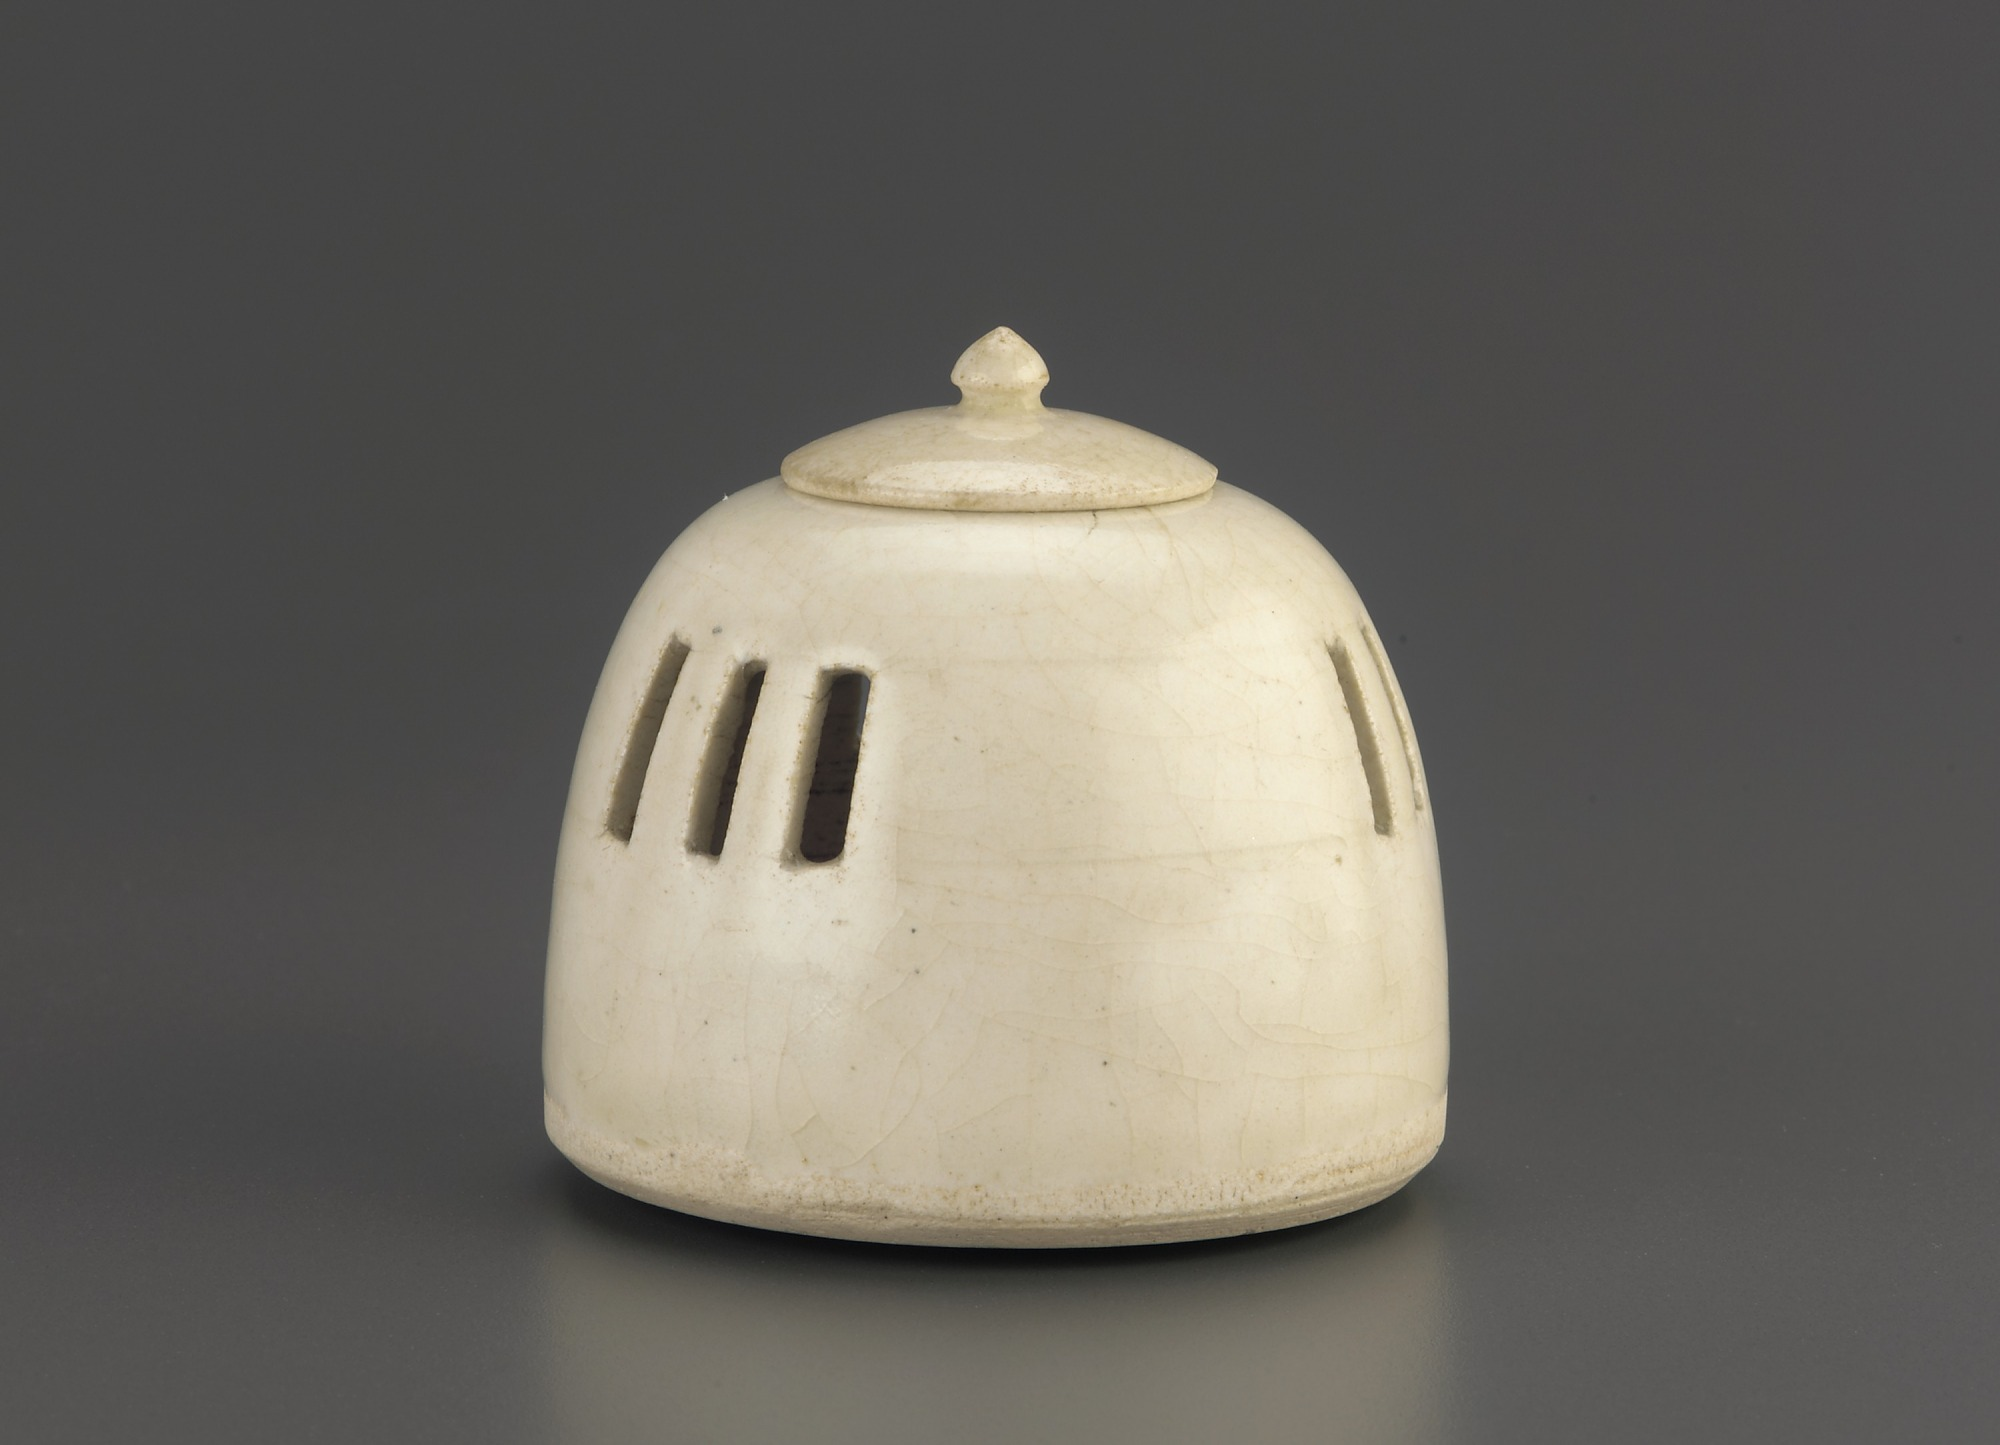 profile: Miniature hand warmer or incense burner with lid